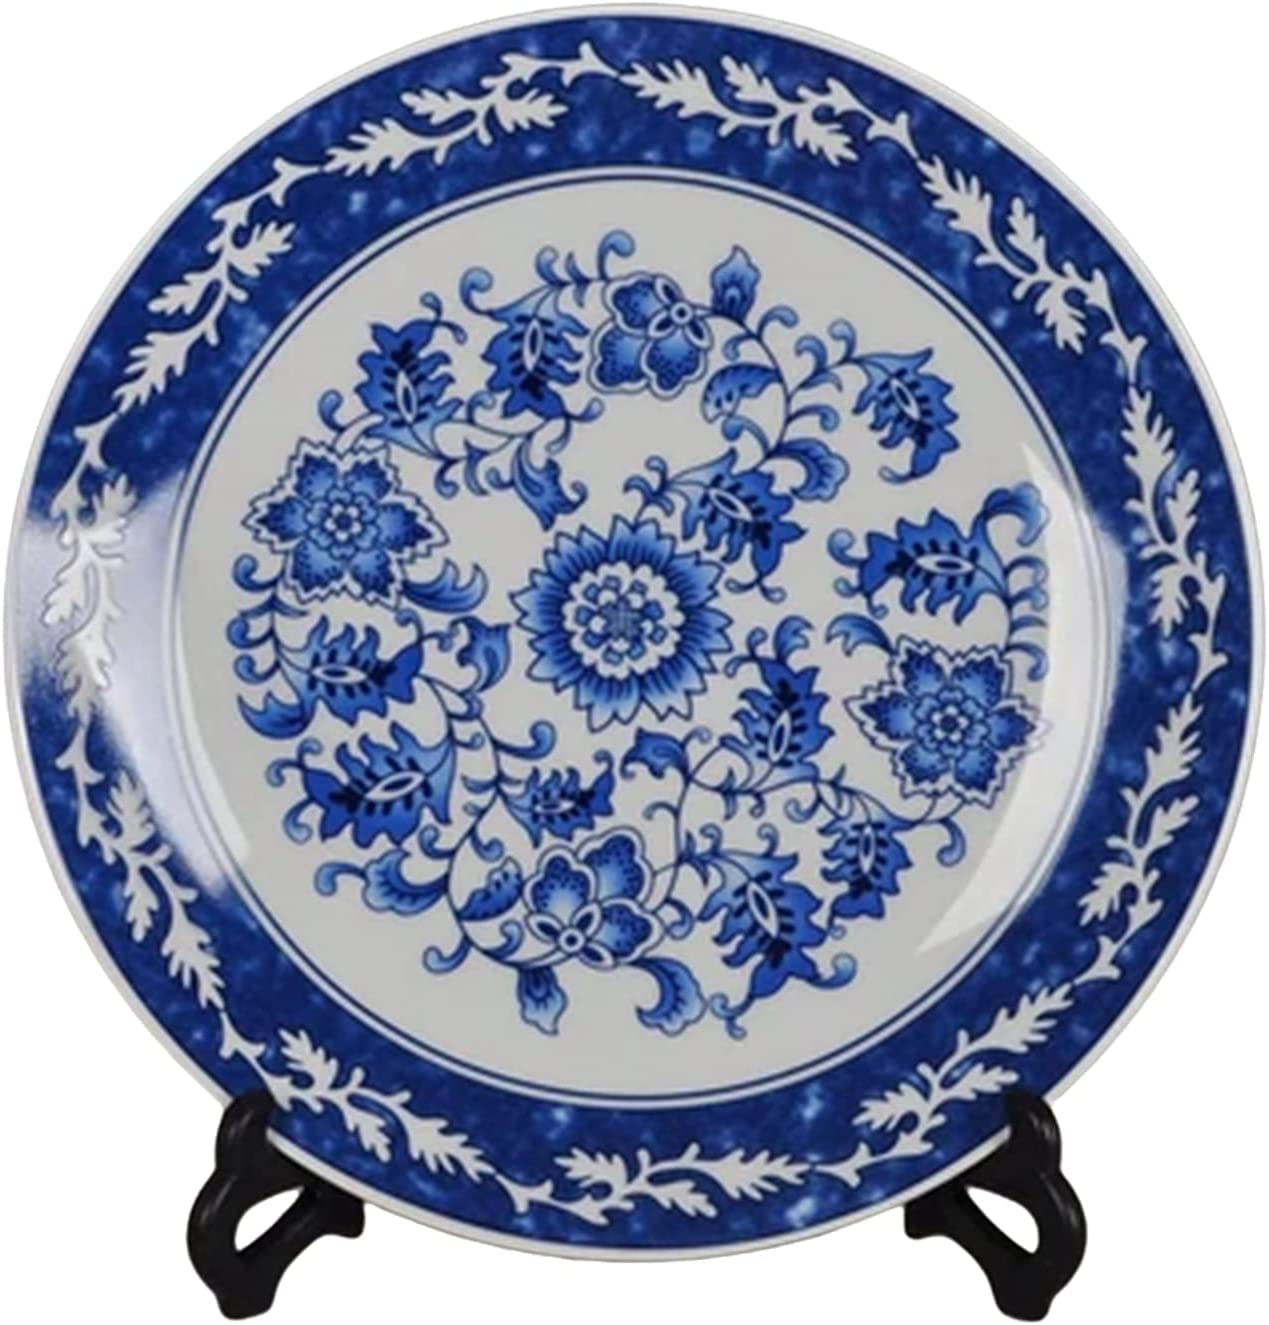 jdzjybqx Decorative Plates Blue and White Porcelain Plate of 10'' Oriental Floral Pattern Ceramic Craft for Decorative Ornaments Dessert Plates, 1 Plate with 1 Display Stand